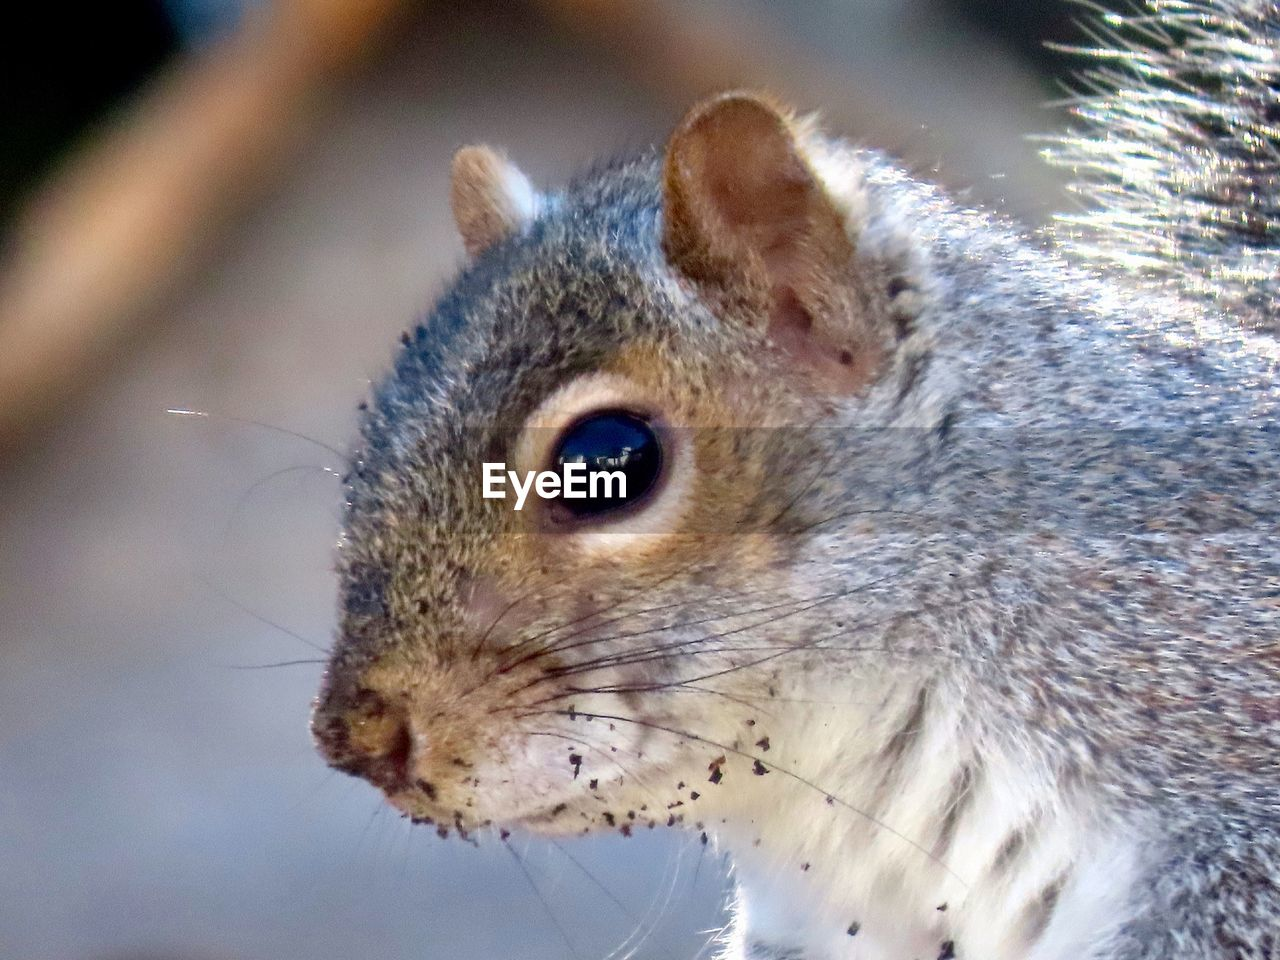 animal themes, animal, one animal, animal wildlife, mammal, close-up, animals in the wild, rodent, vertebrate, whisker, animal body part, no people, looking, focus on foreground, animal head, squirrel, looking away, day, outdoors, pets, animal eye, profile view